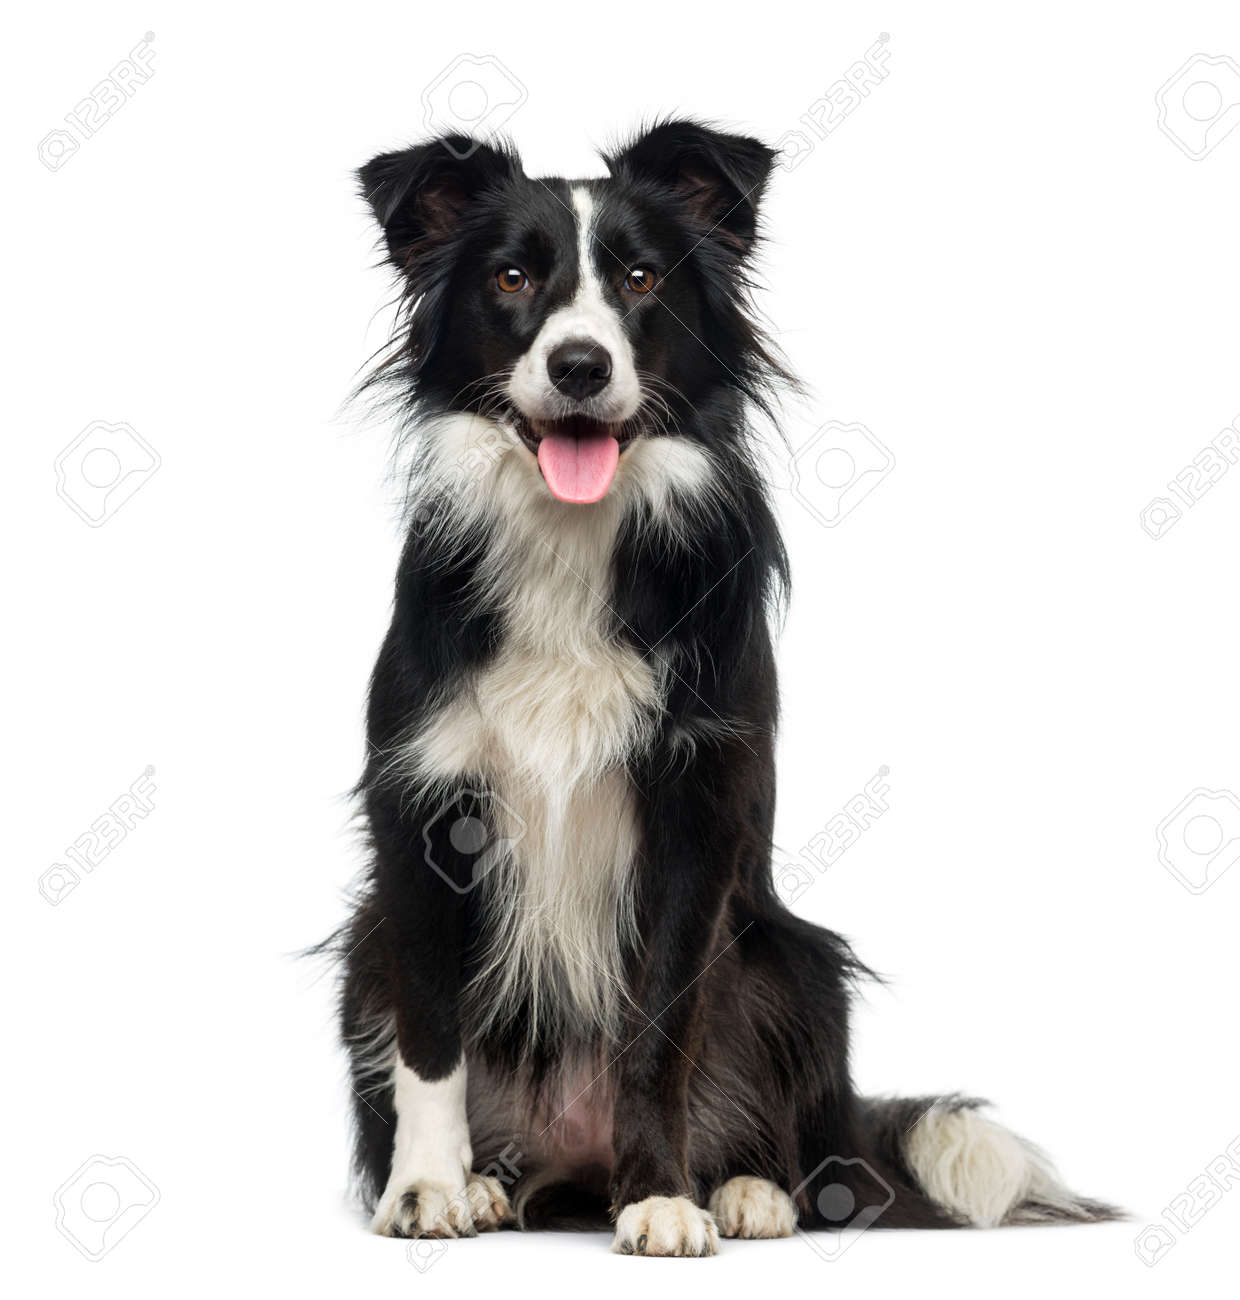 Border Collie (2 Years Old) Stock Photo, Picture And Royalty Free Image.  Image 36239241.